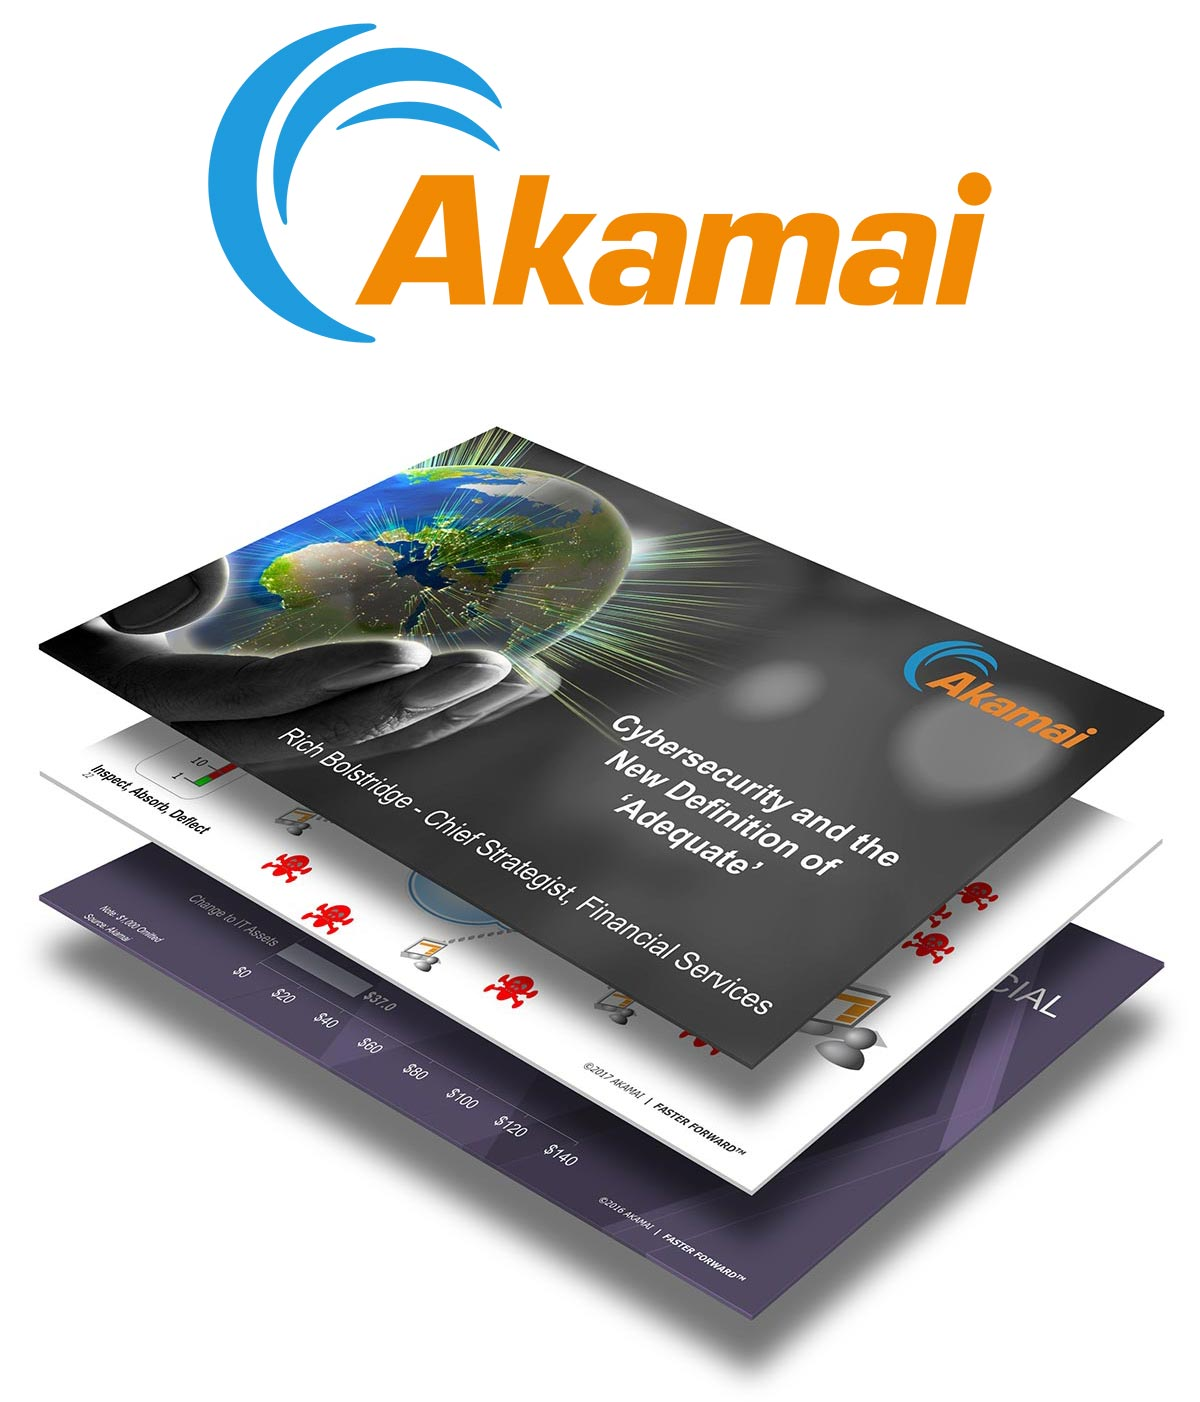 Akamai Webinar: Cybersecurity and the New Definition of 'Adequate'